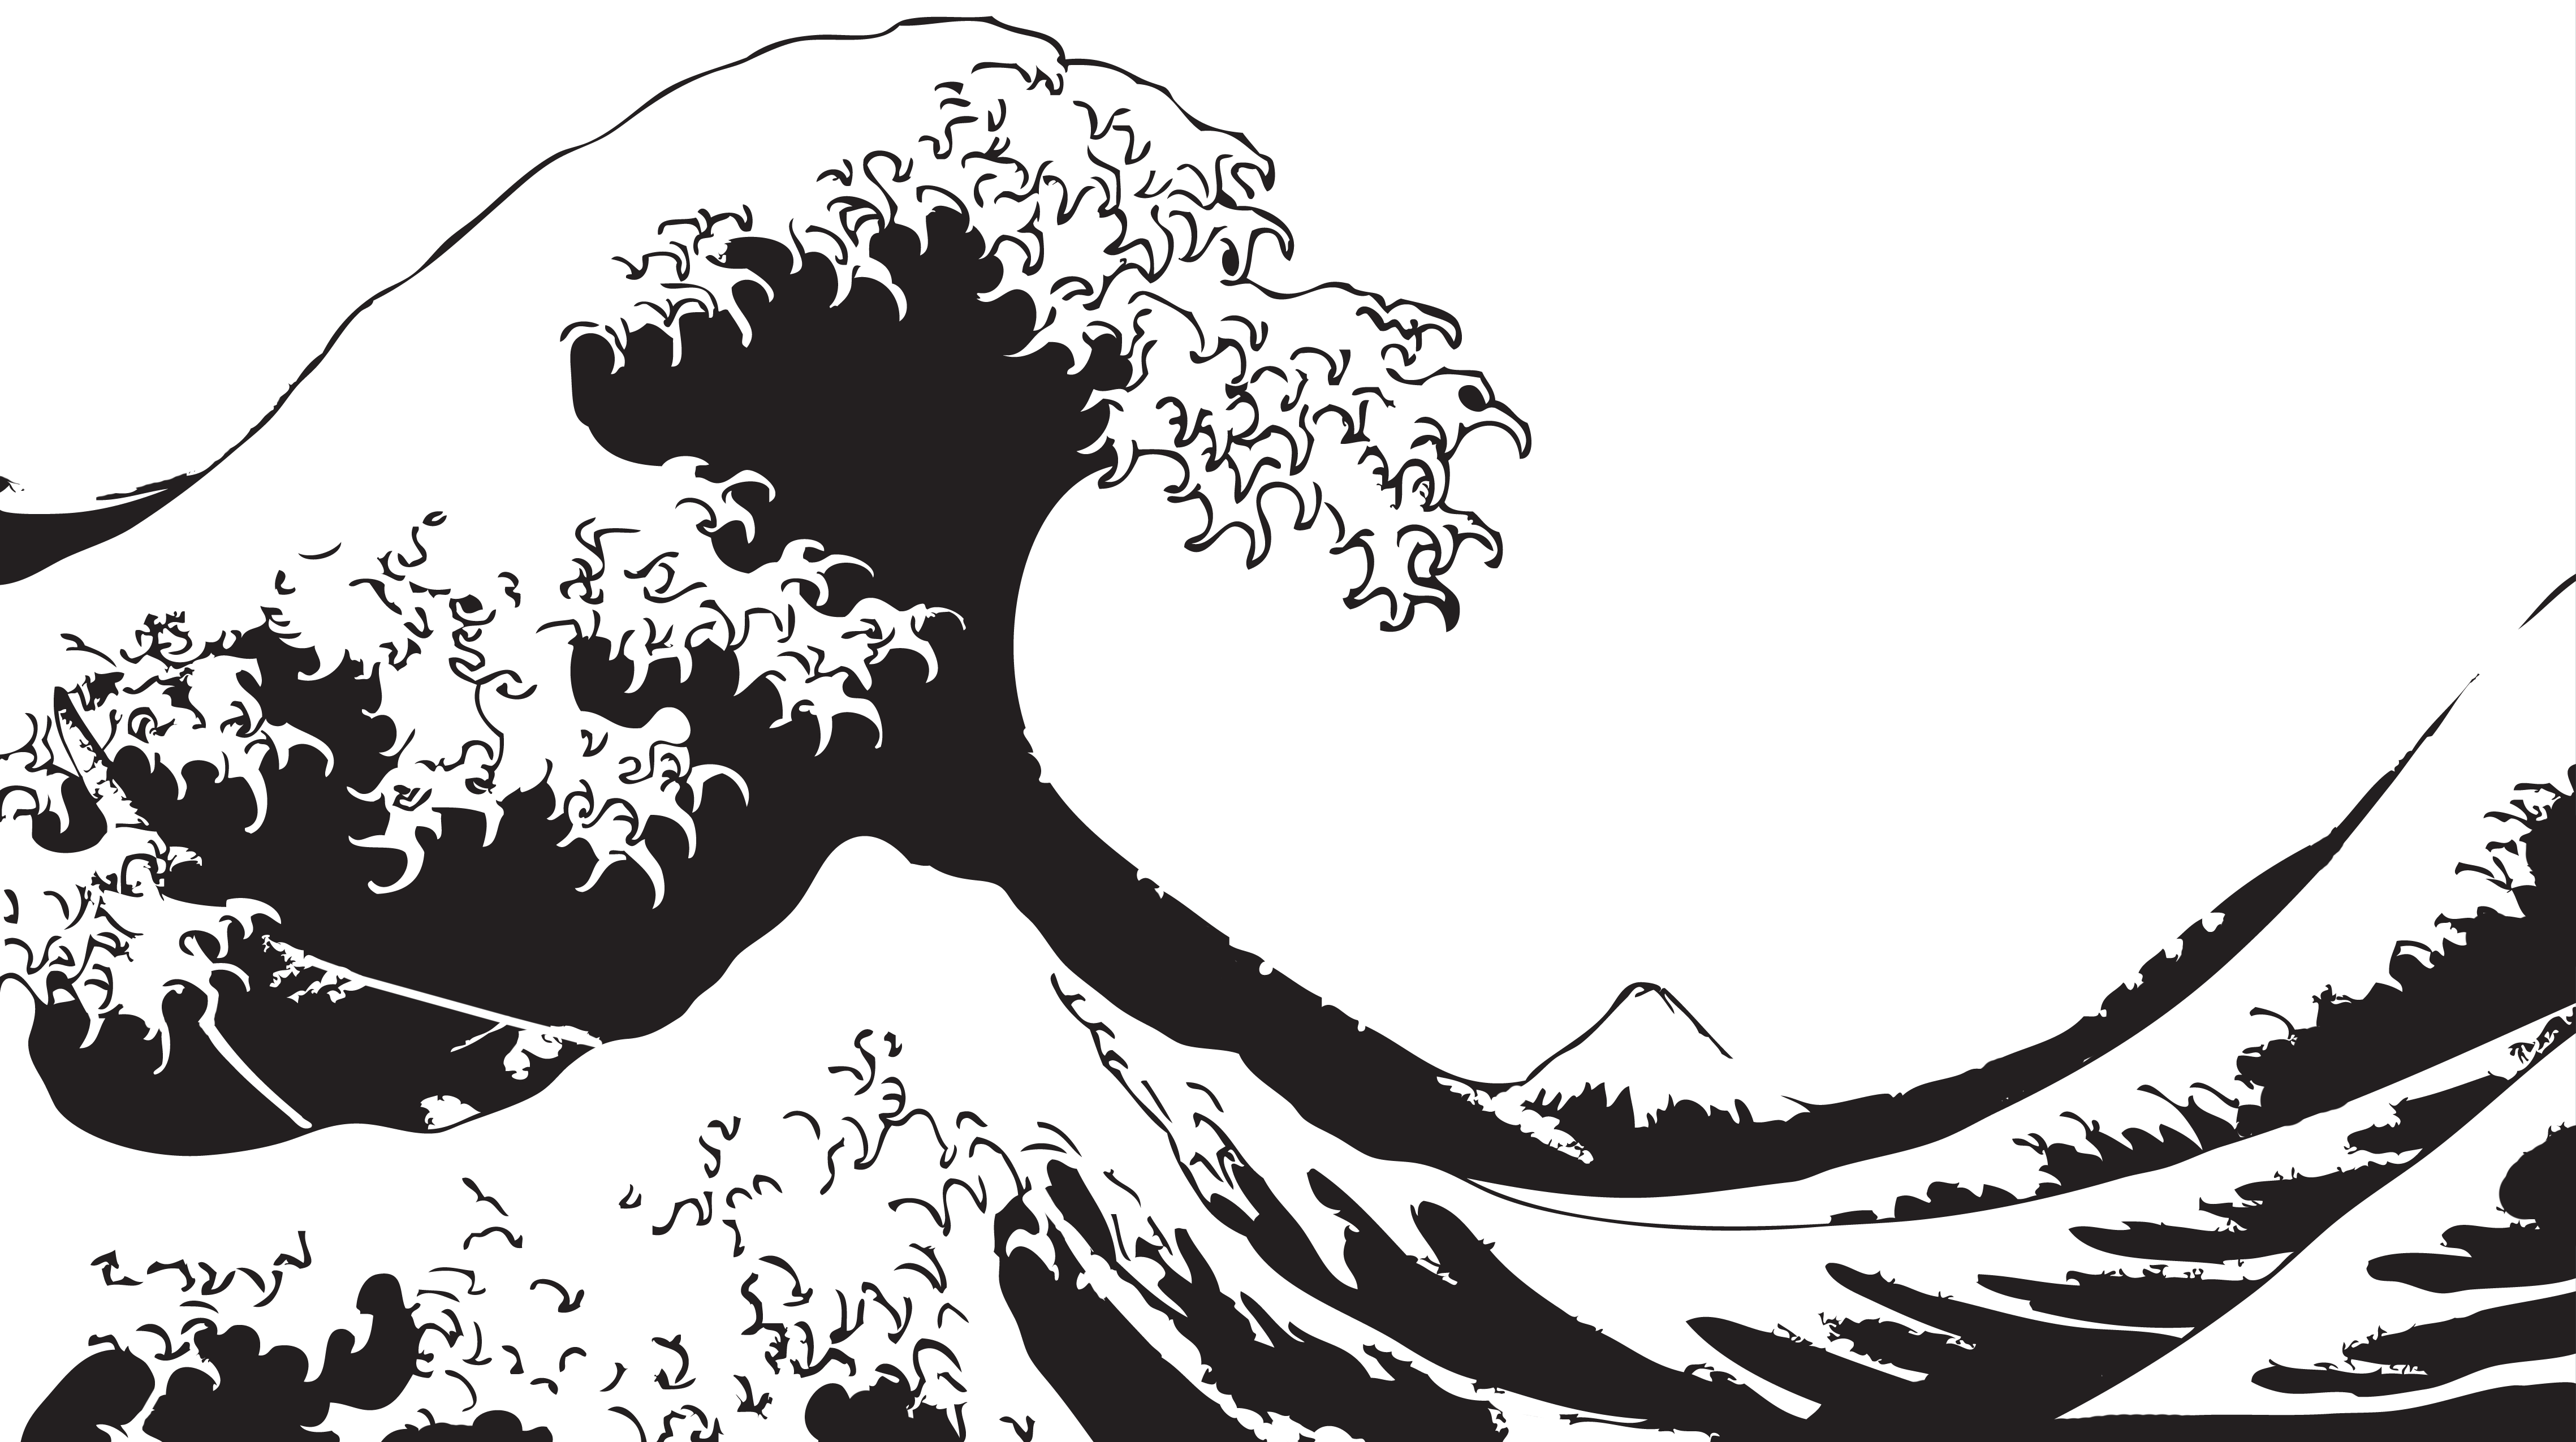 http://i.imgur pluspng.com/e3ila.png - Black And White Wave PNG